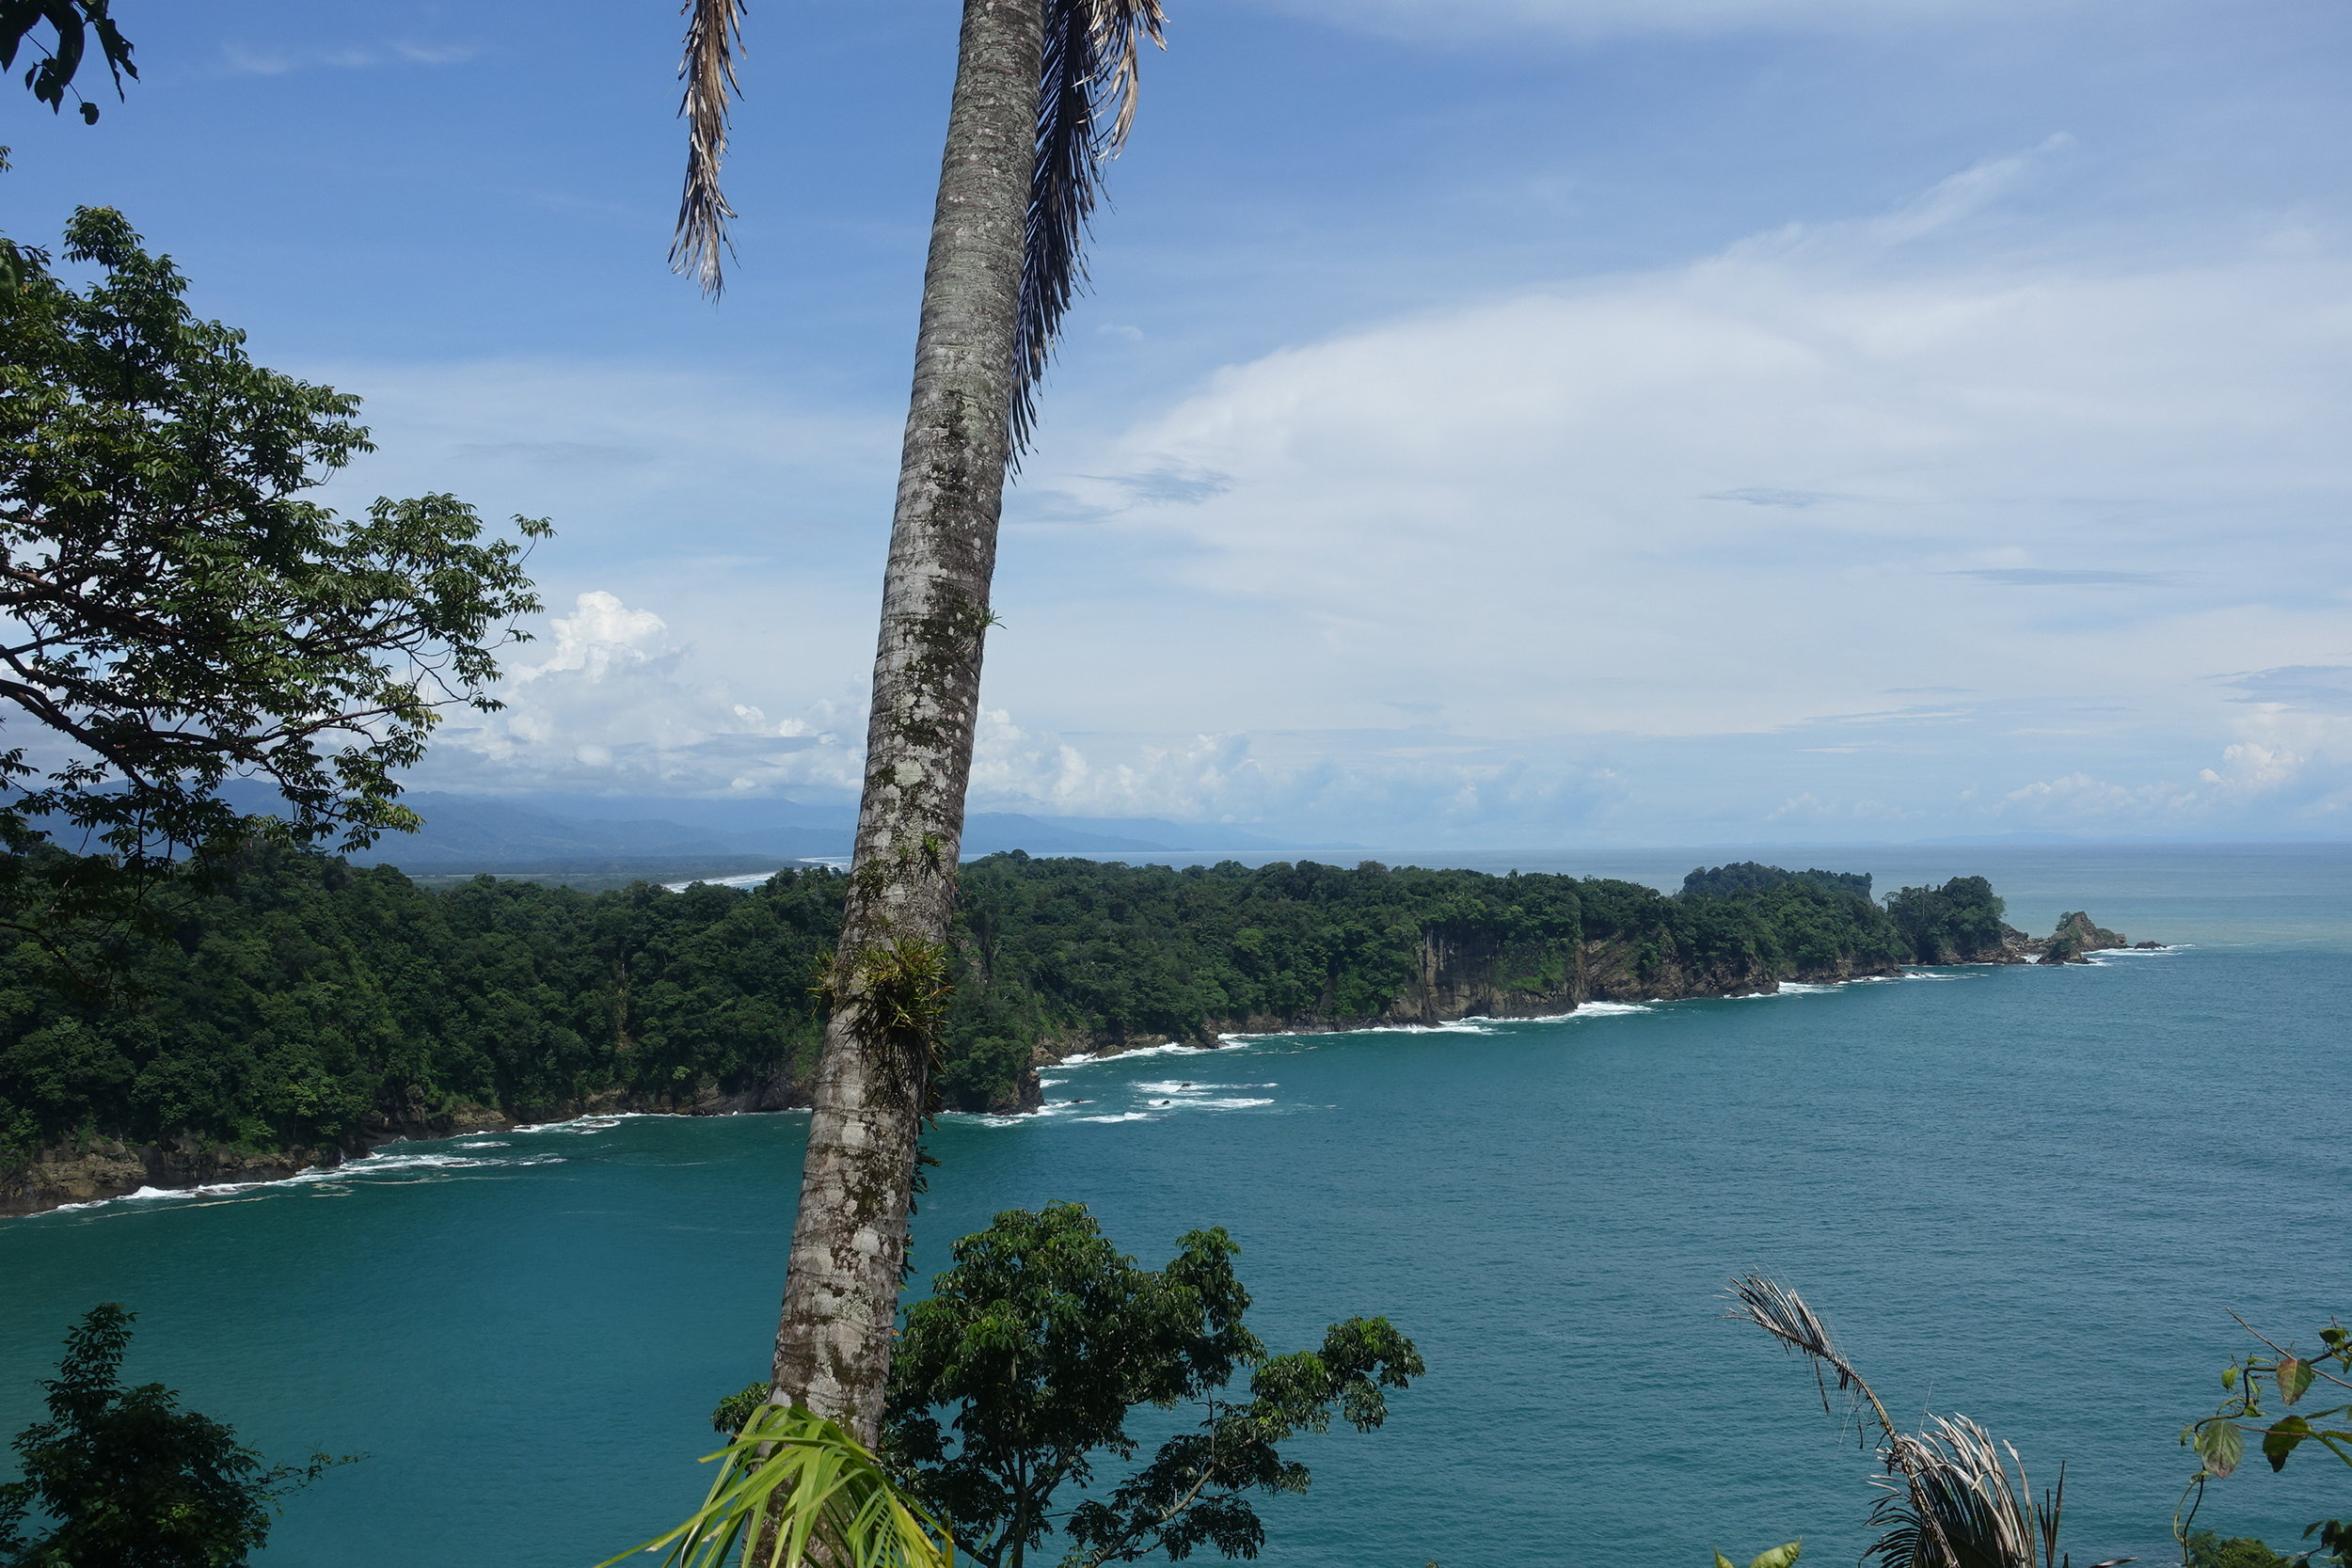 manuel Antonio has some spectacular coastal views